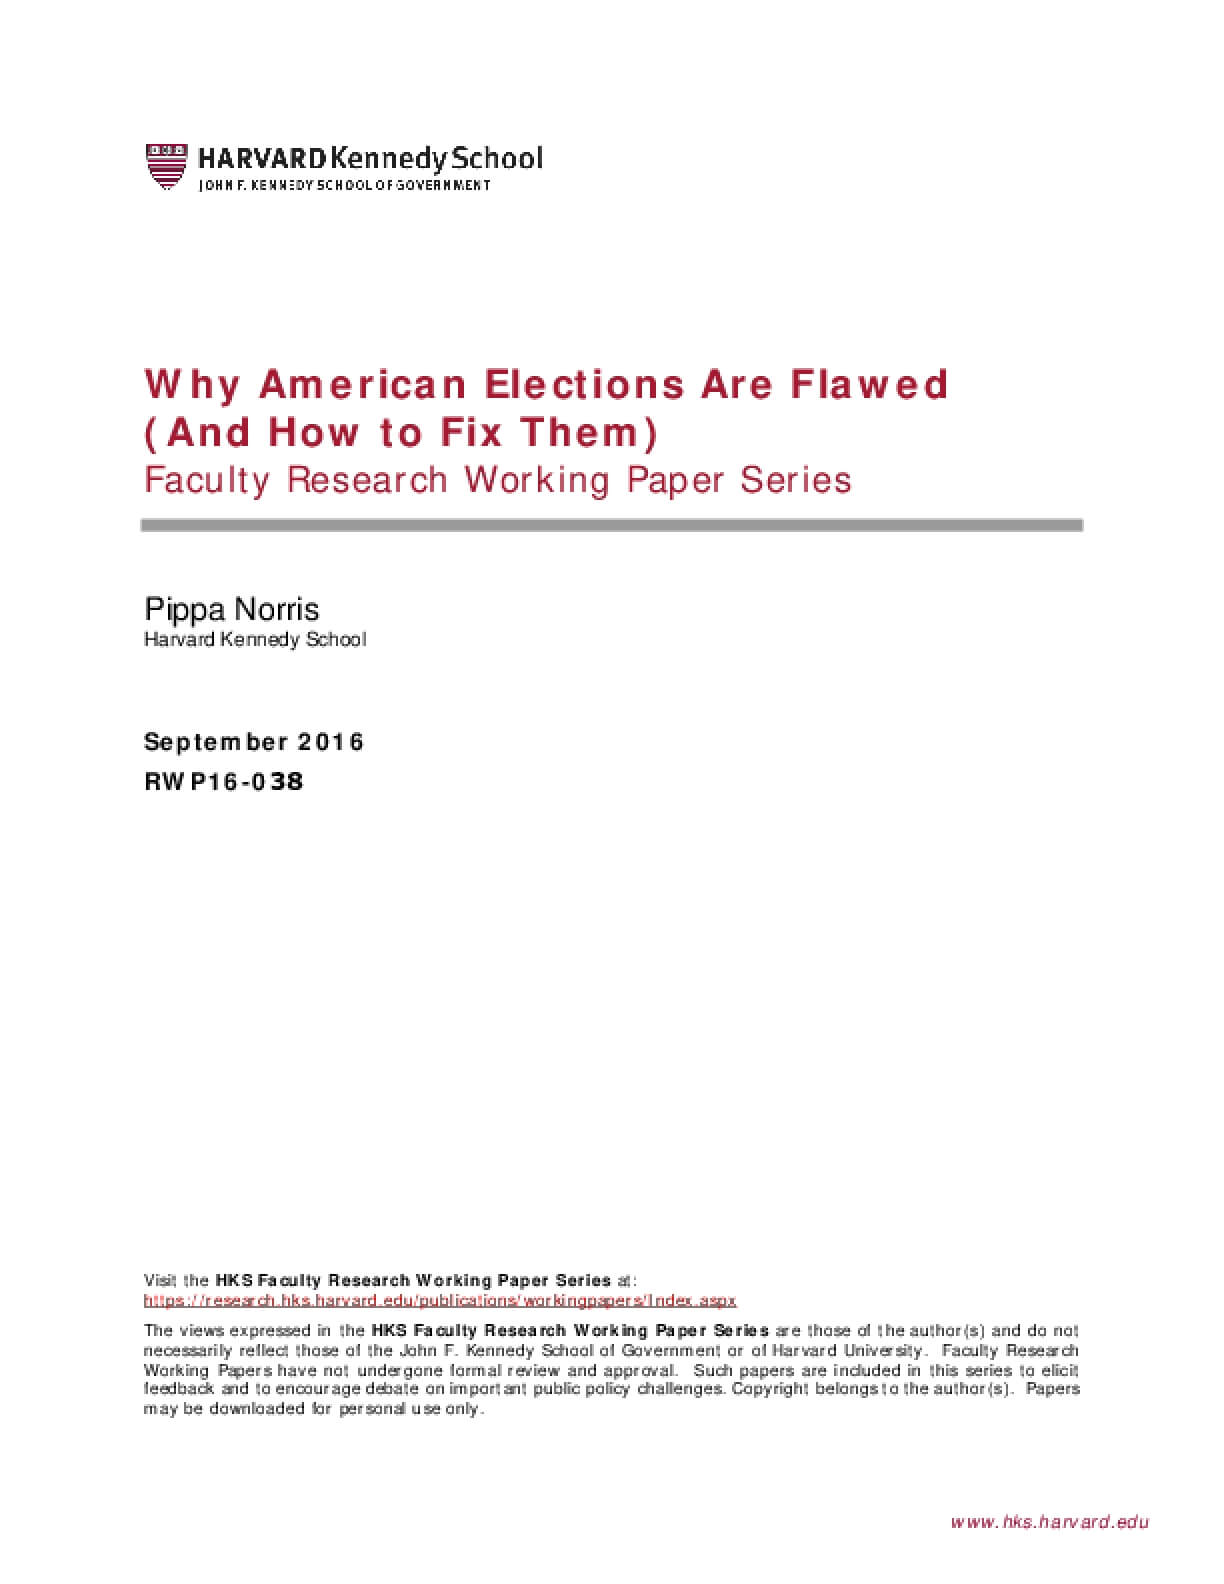 Why American Elections Are Flawed (And How to Fix Them)